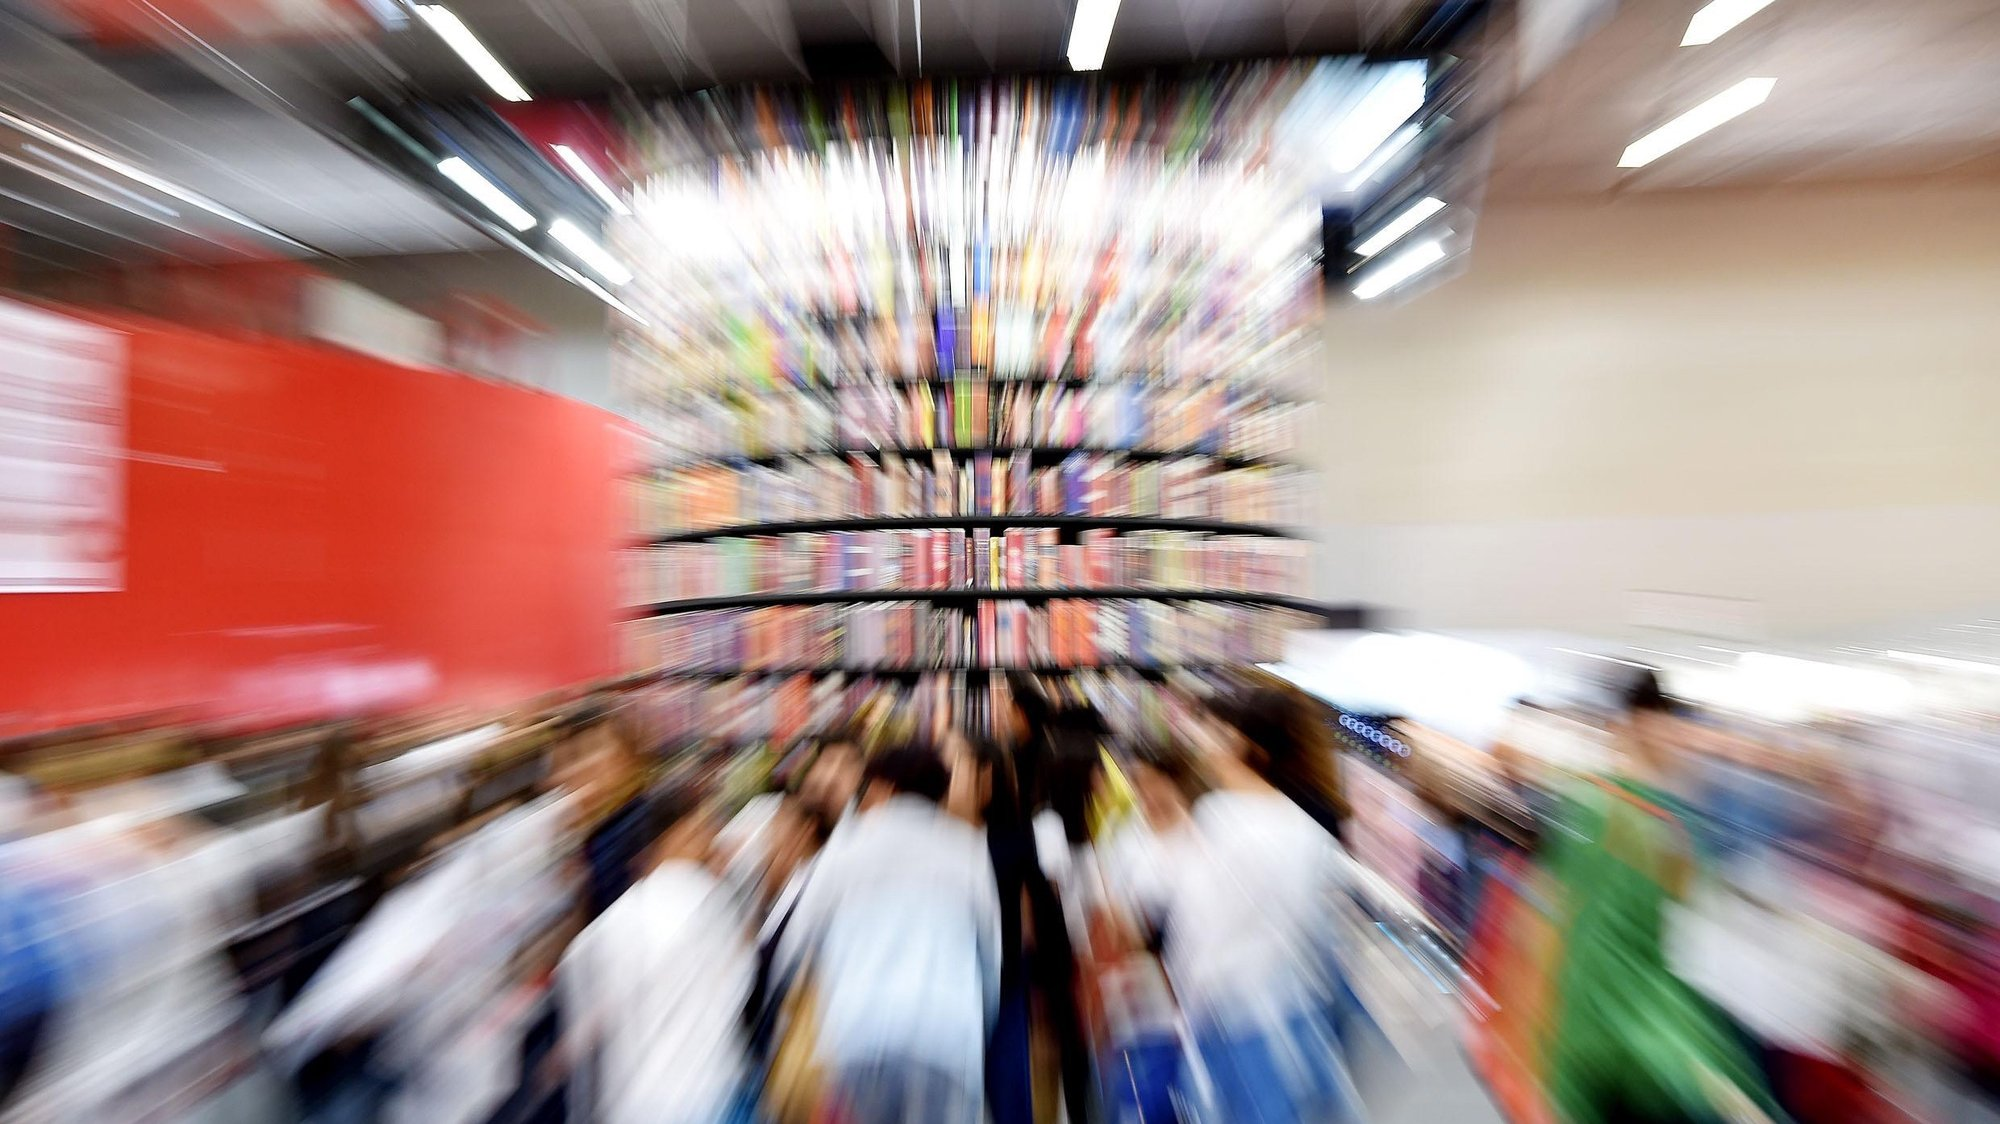 epa06728453 Visitors attend the 31st Turin International Book Fair in Turin, Italy, 11 May 2018. The Turin International Book Fair running from 10 to 14 May is the largest book fair in Italy.  EPA/ALESSANDRO DI MARCO